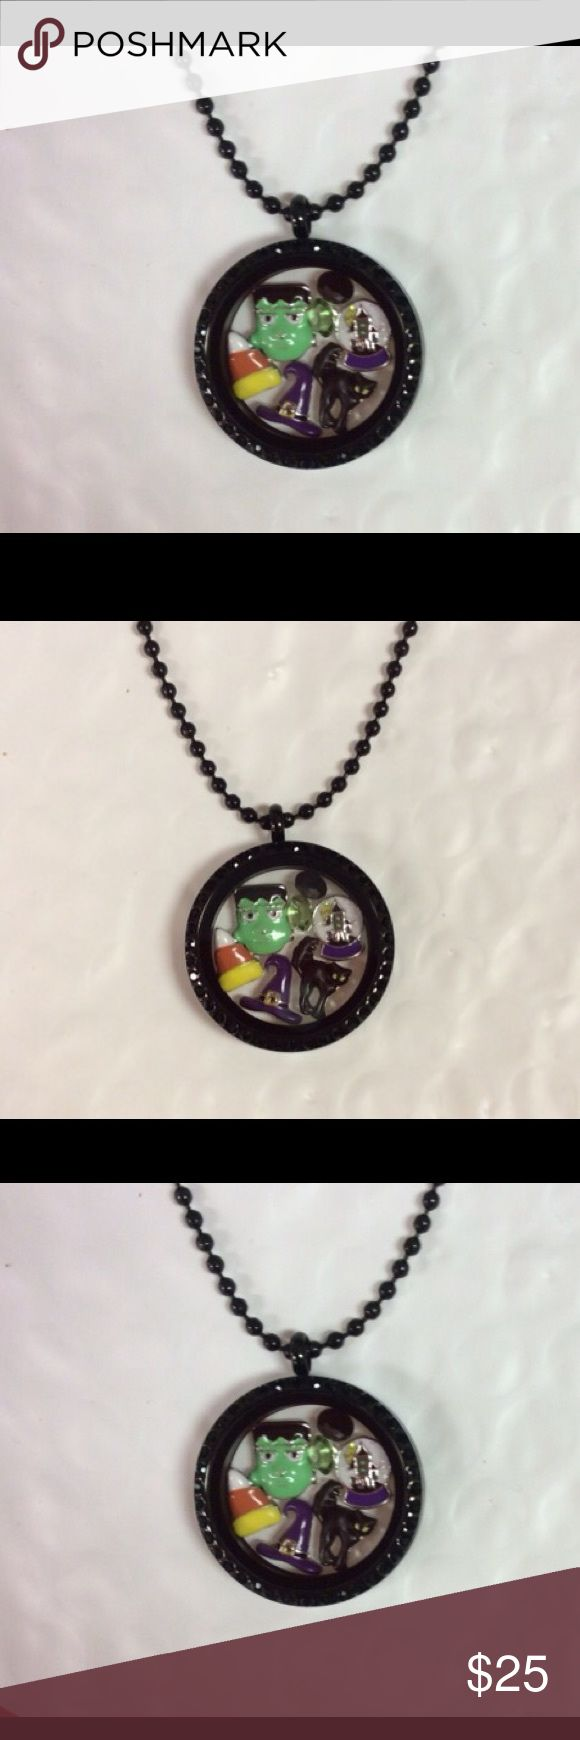 Origami Owl style locket and Halloween charms BOO This is a black stainless steel locket 30 mm. Inside you will get Halloween charms me not be this exact thank you have a great day. I am running little low but don't worry they'll be great! It comes with the chain as well. Origami Owl Jewelry Necklaces